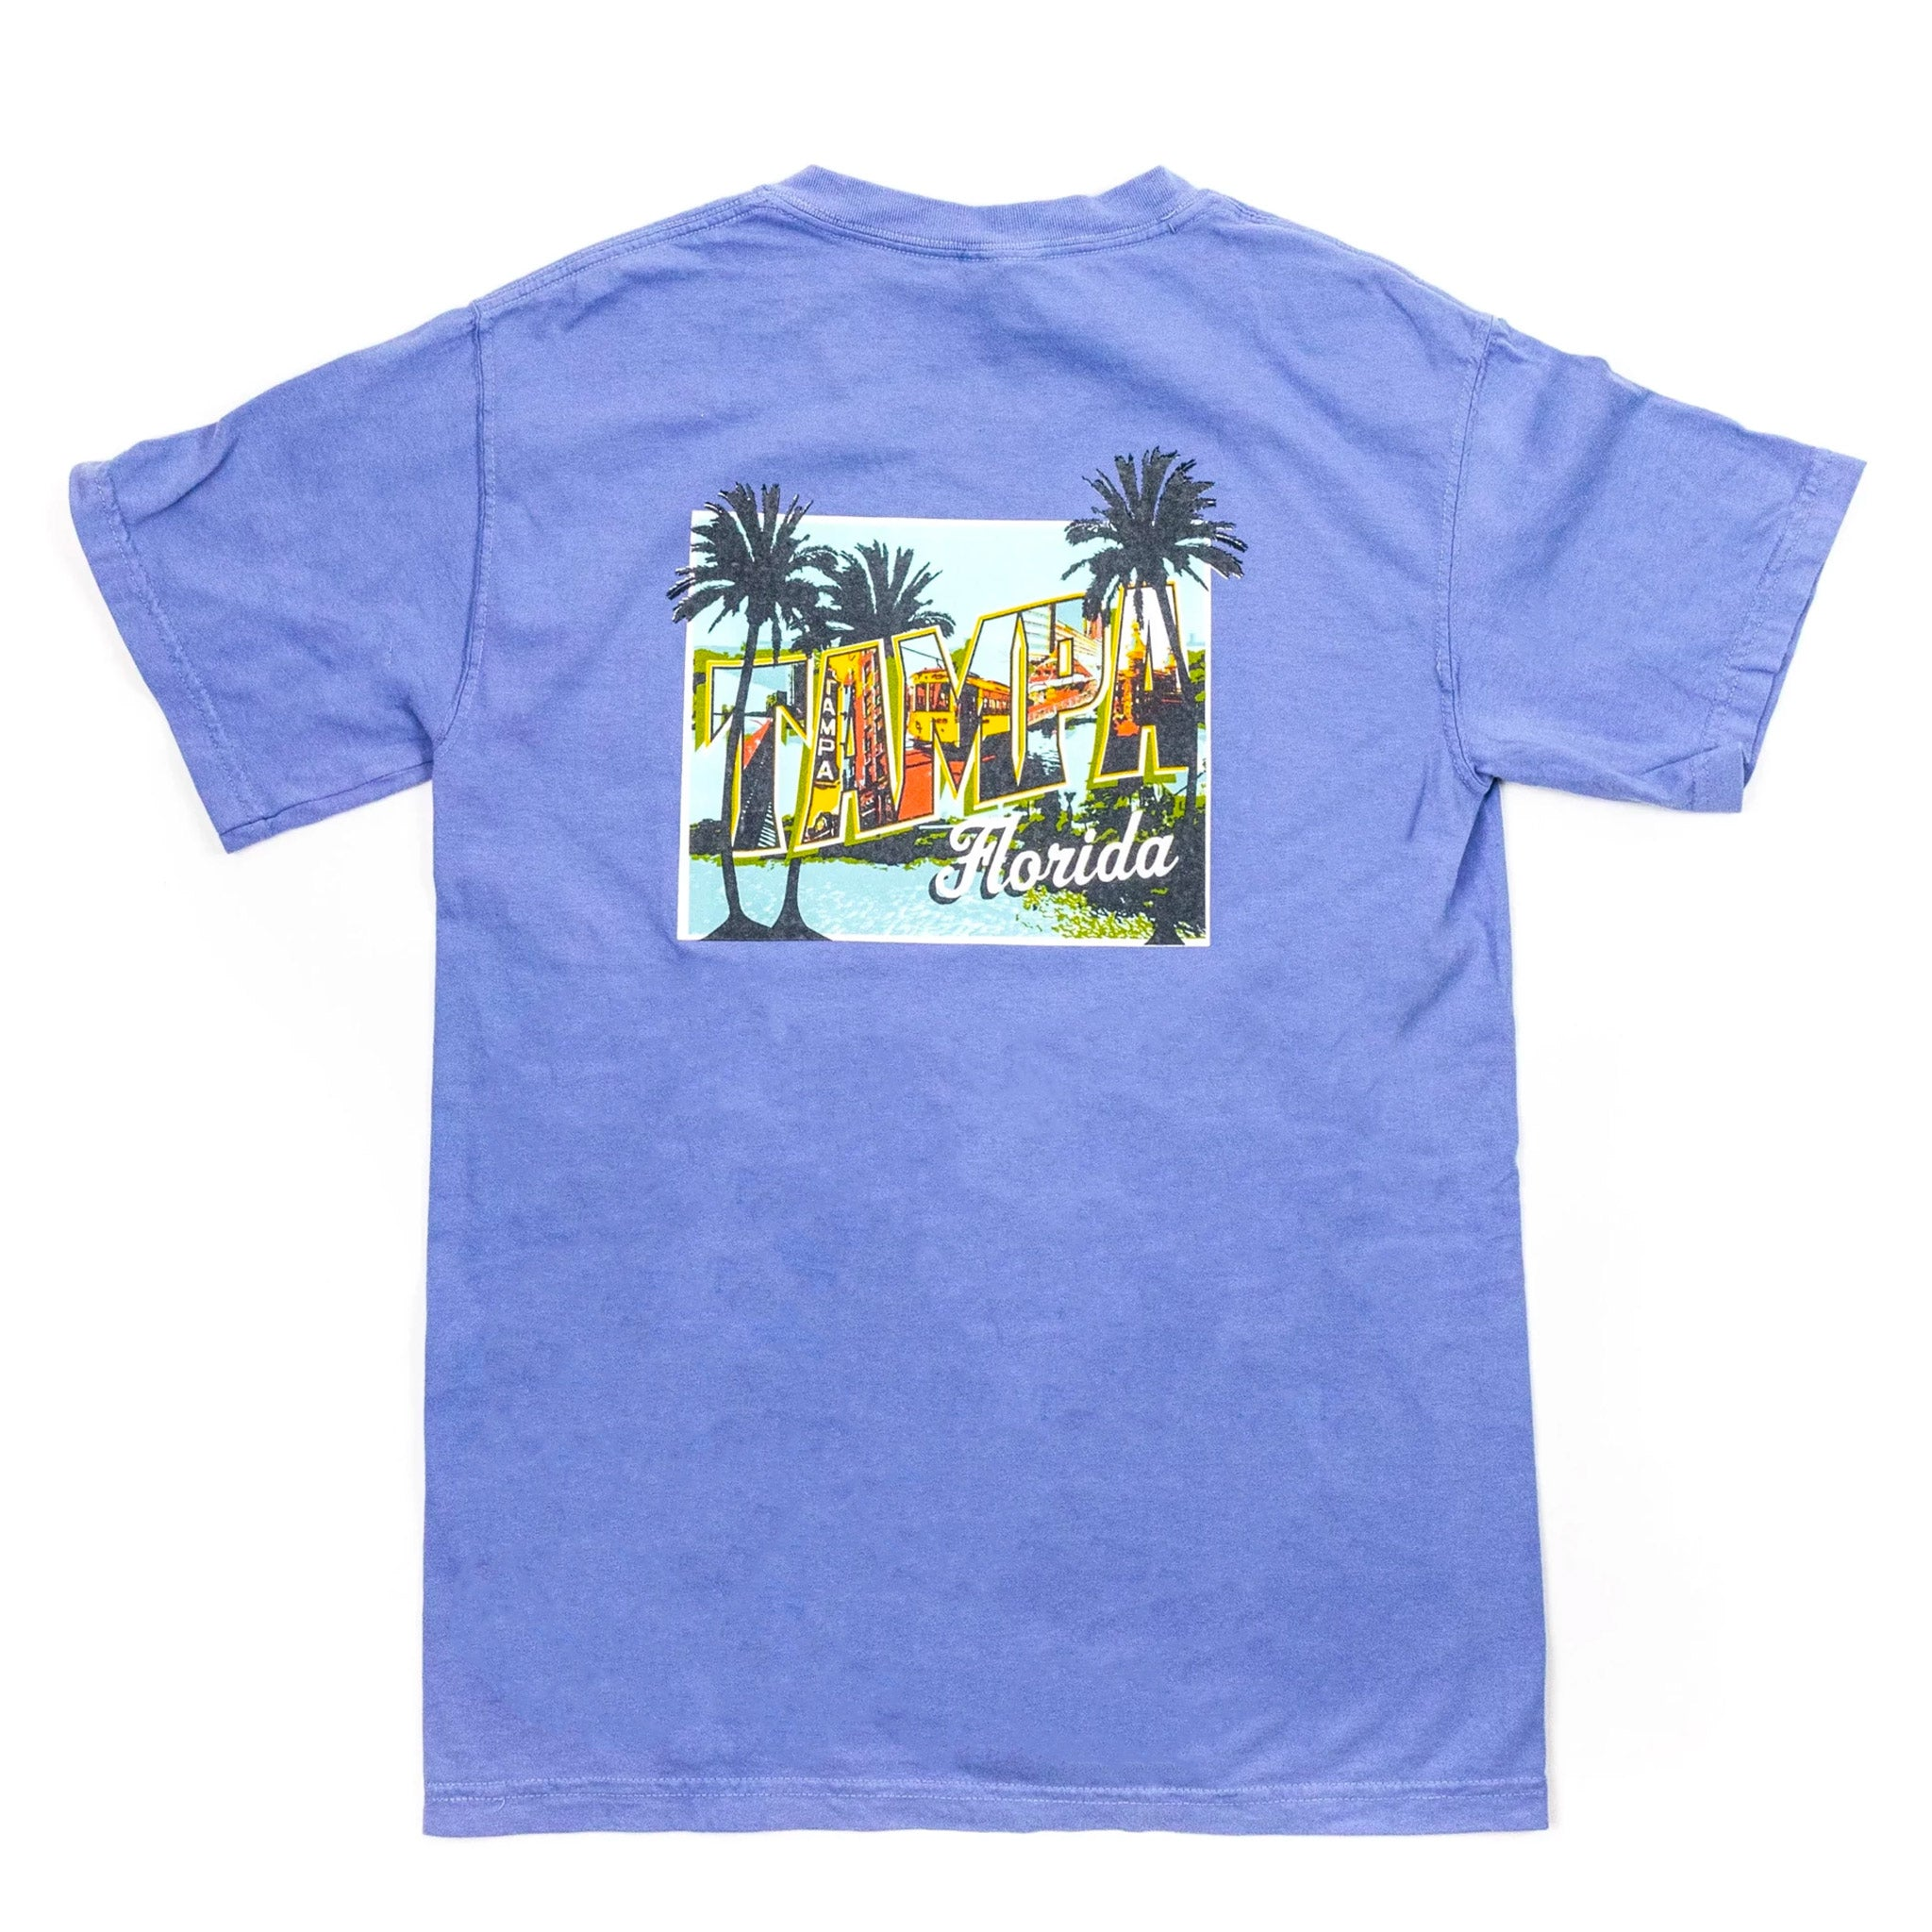 Mural T-Shirt - Denim